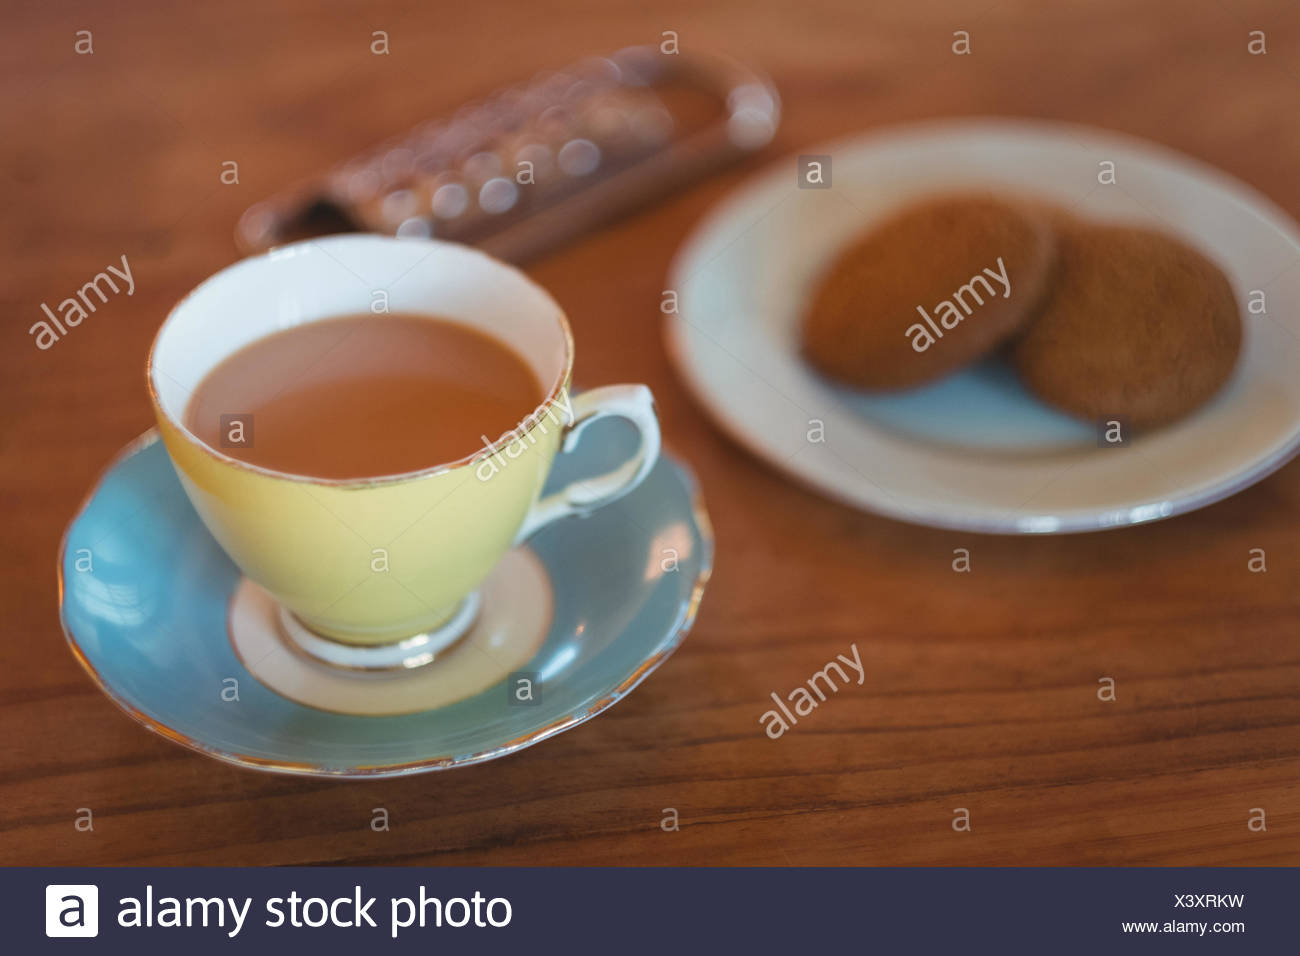 Tea with cookies on wooden table - Stock Image